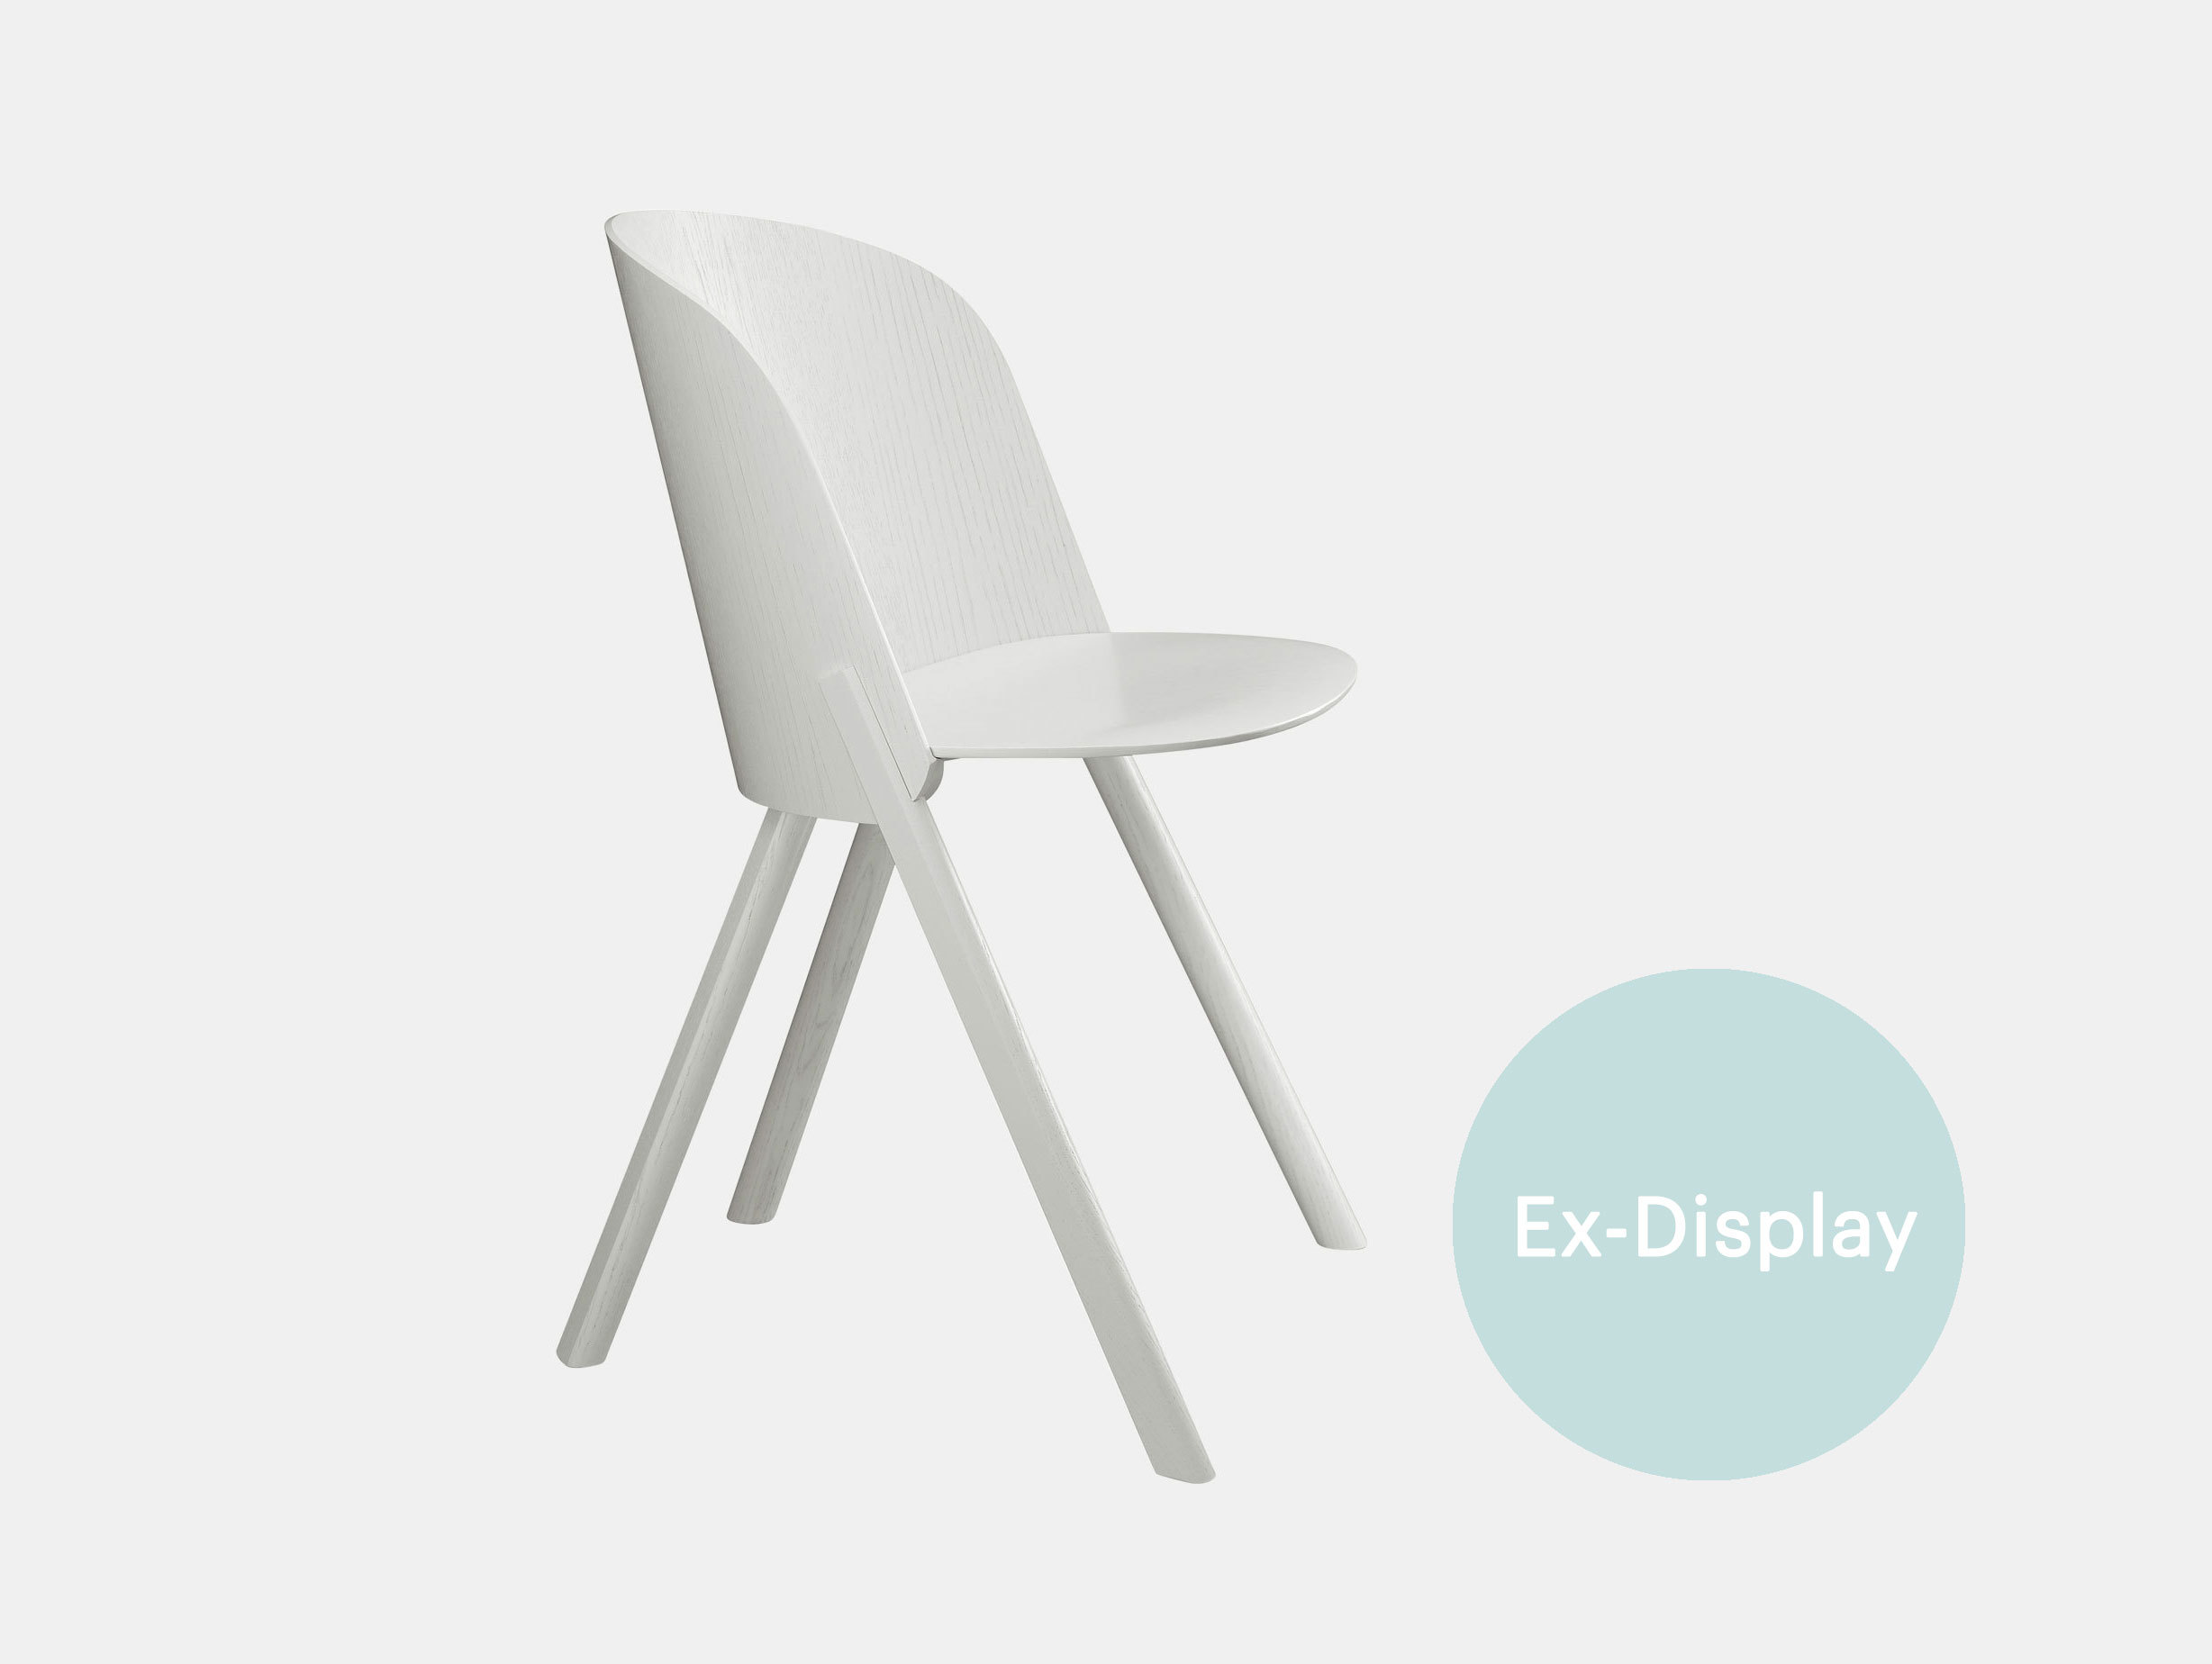 This Chair / 45% off at £195 image 1